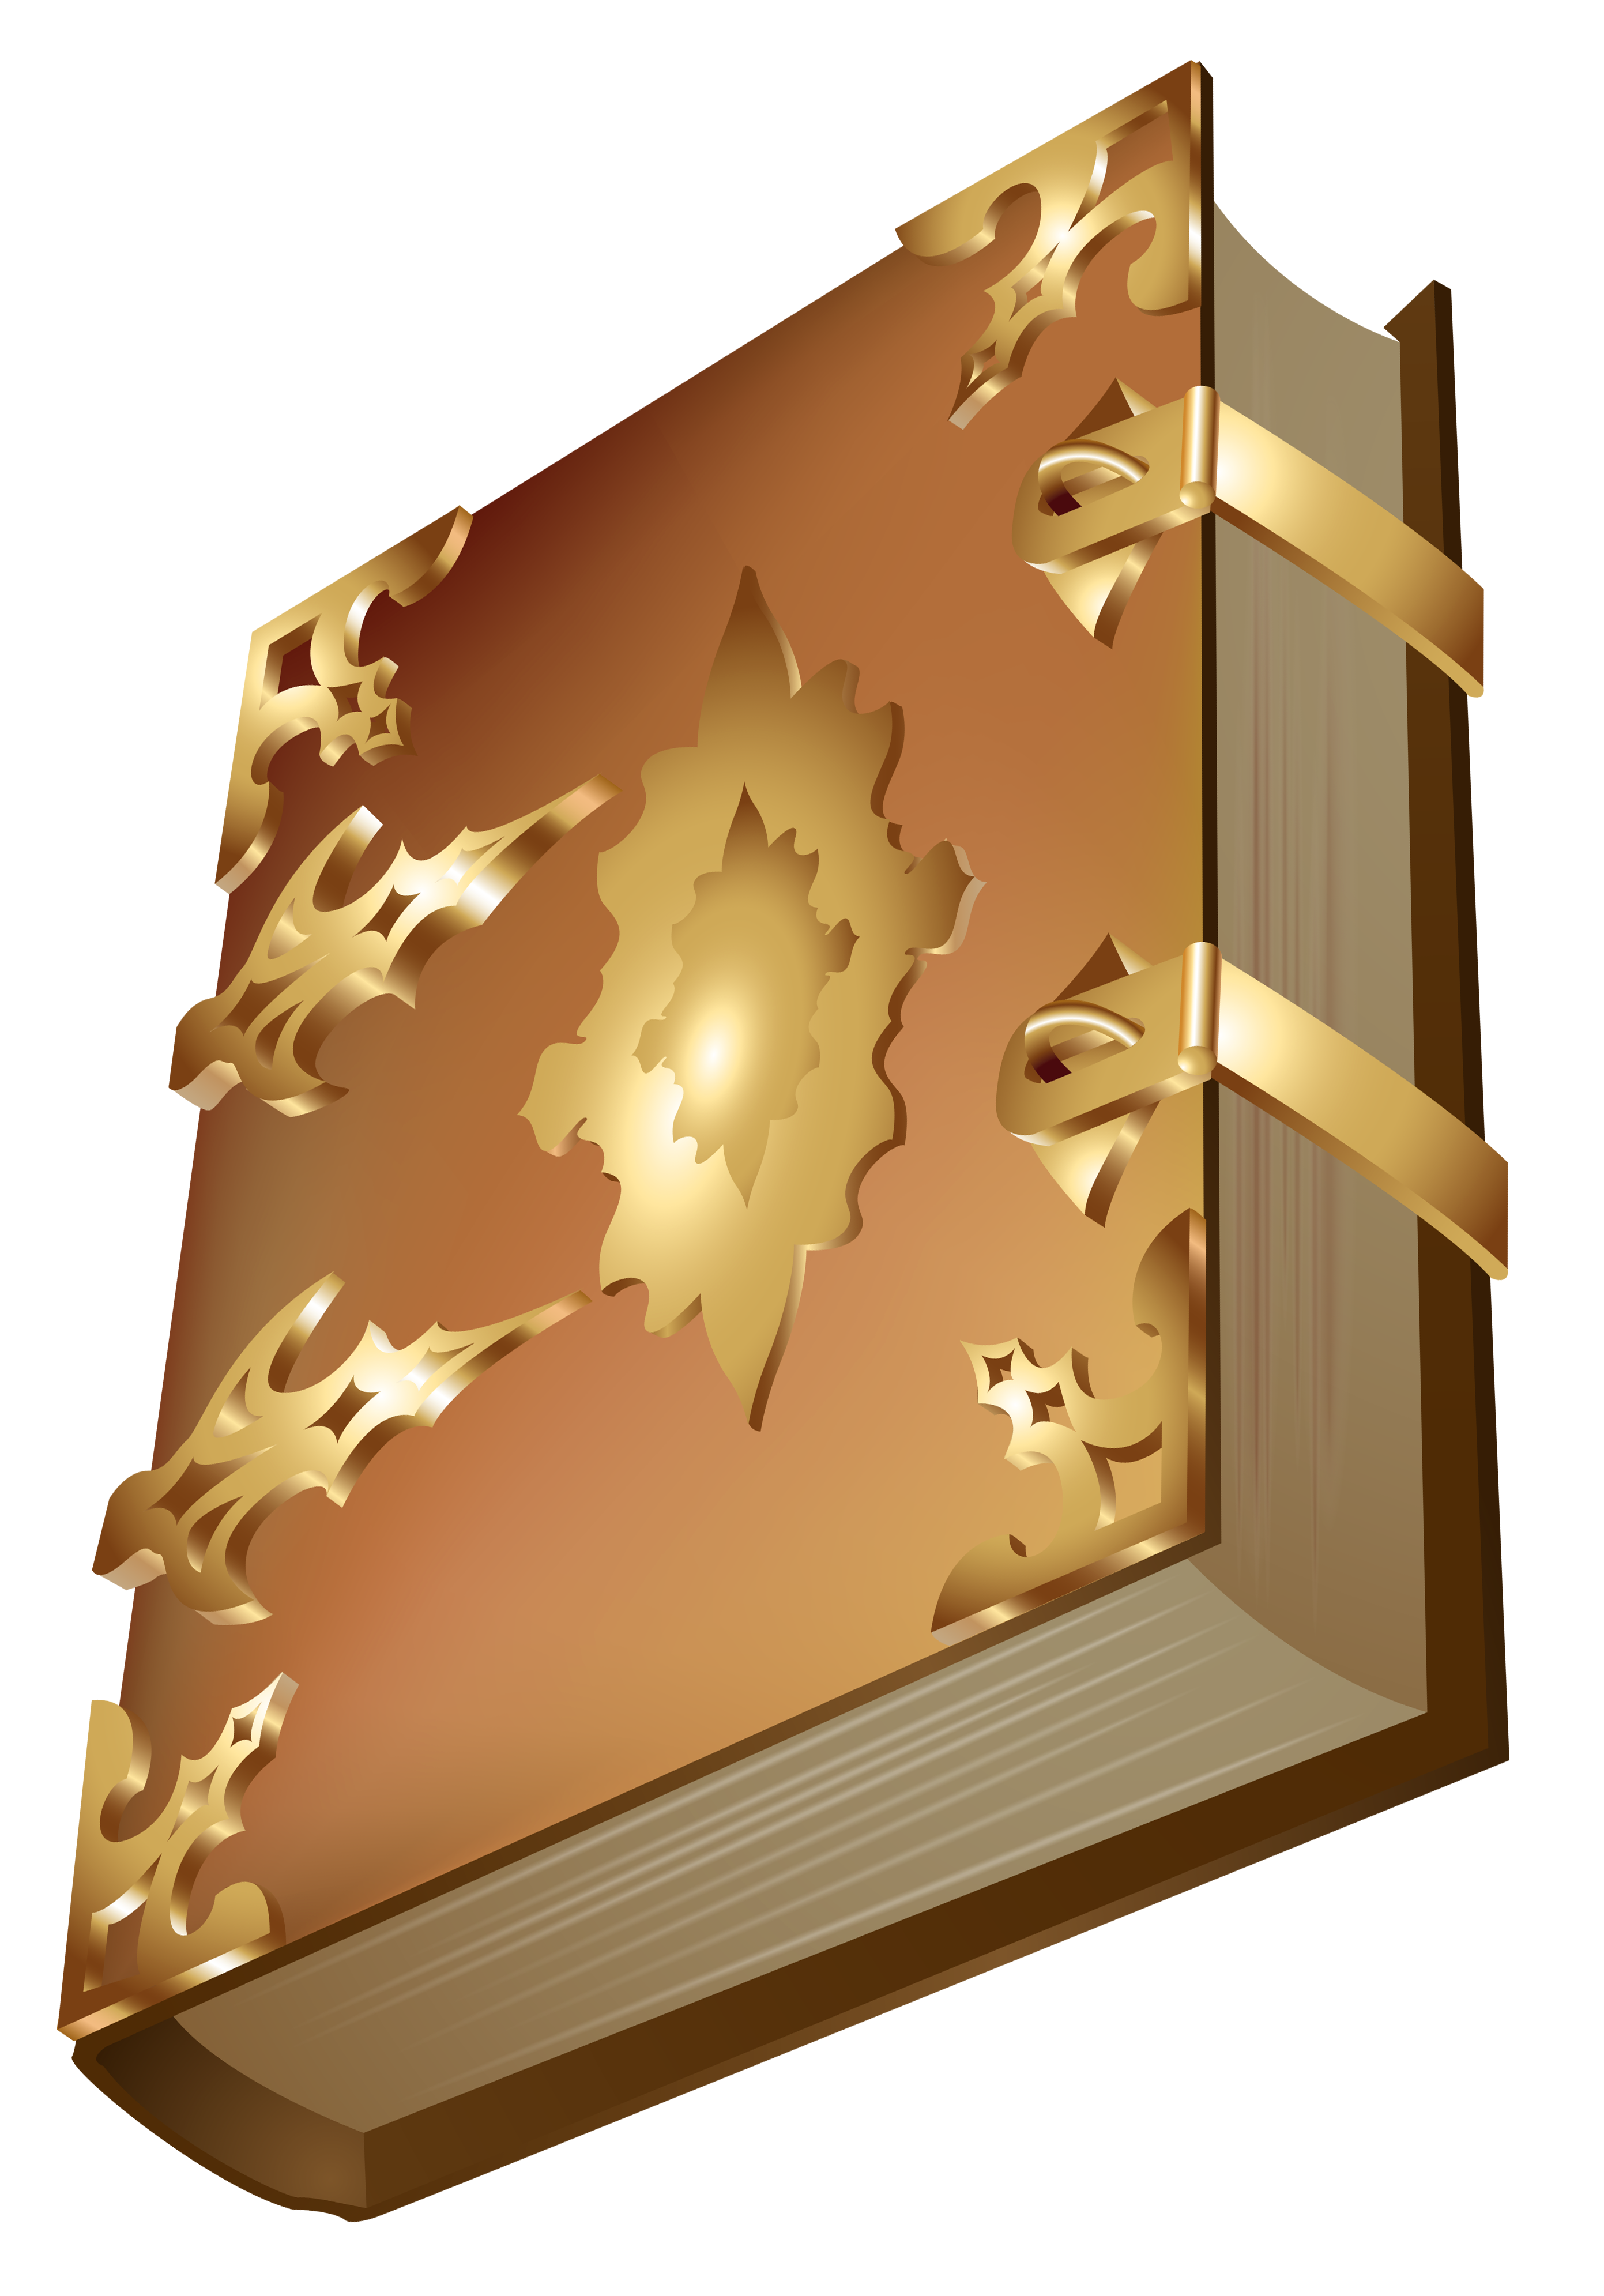 Clipart old books graphic freeuse stock Luxury Old Book PNG Clipart - Best WEB Clipart graphic freeuse stock